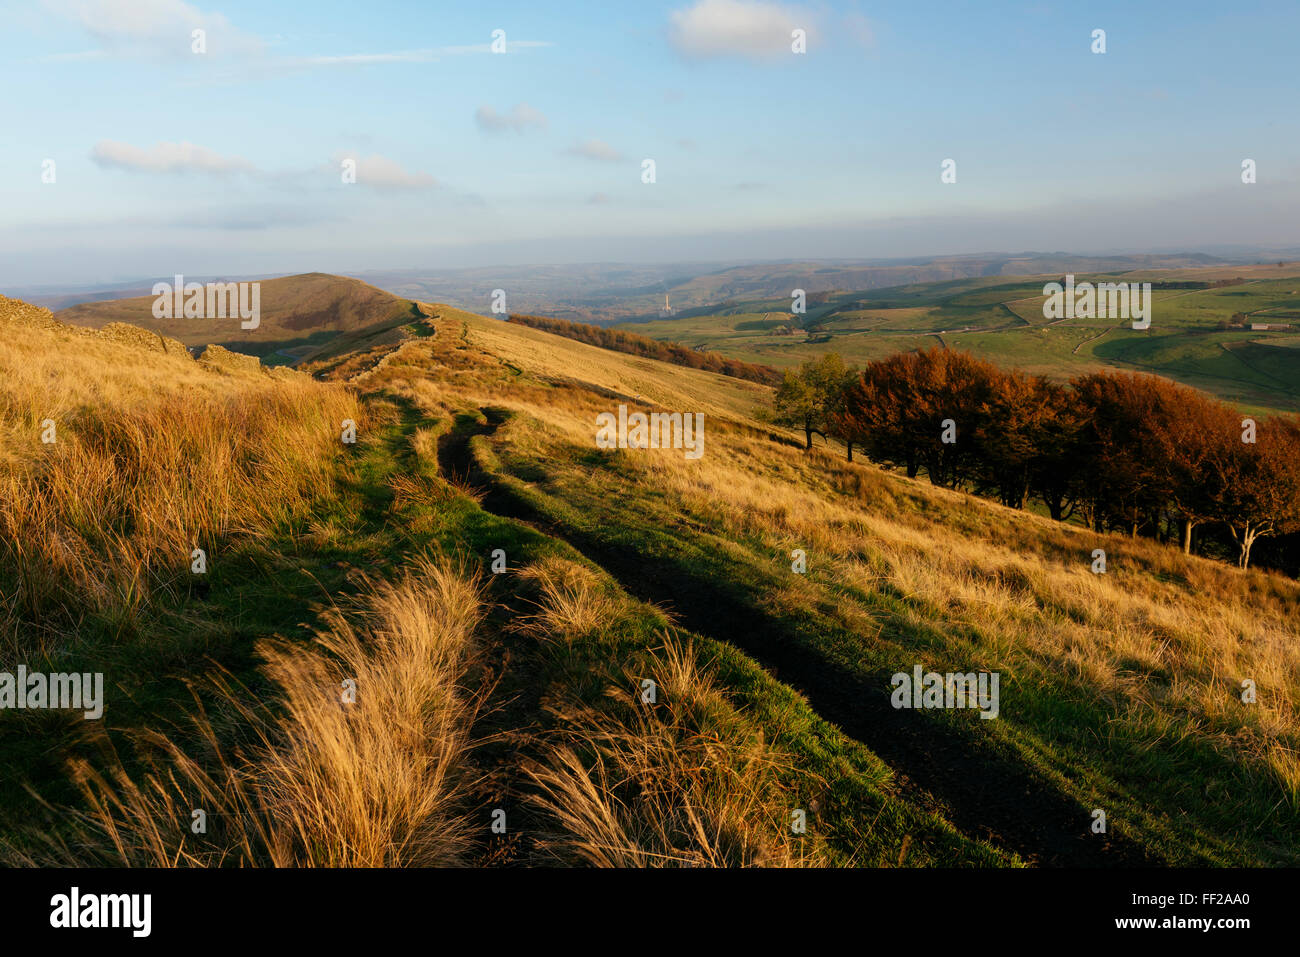 View from Mam Tor, Peak District, Derbyshire, EngRMand, United Kingdom, Europe - Stock Image